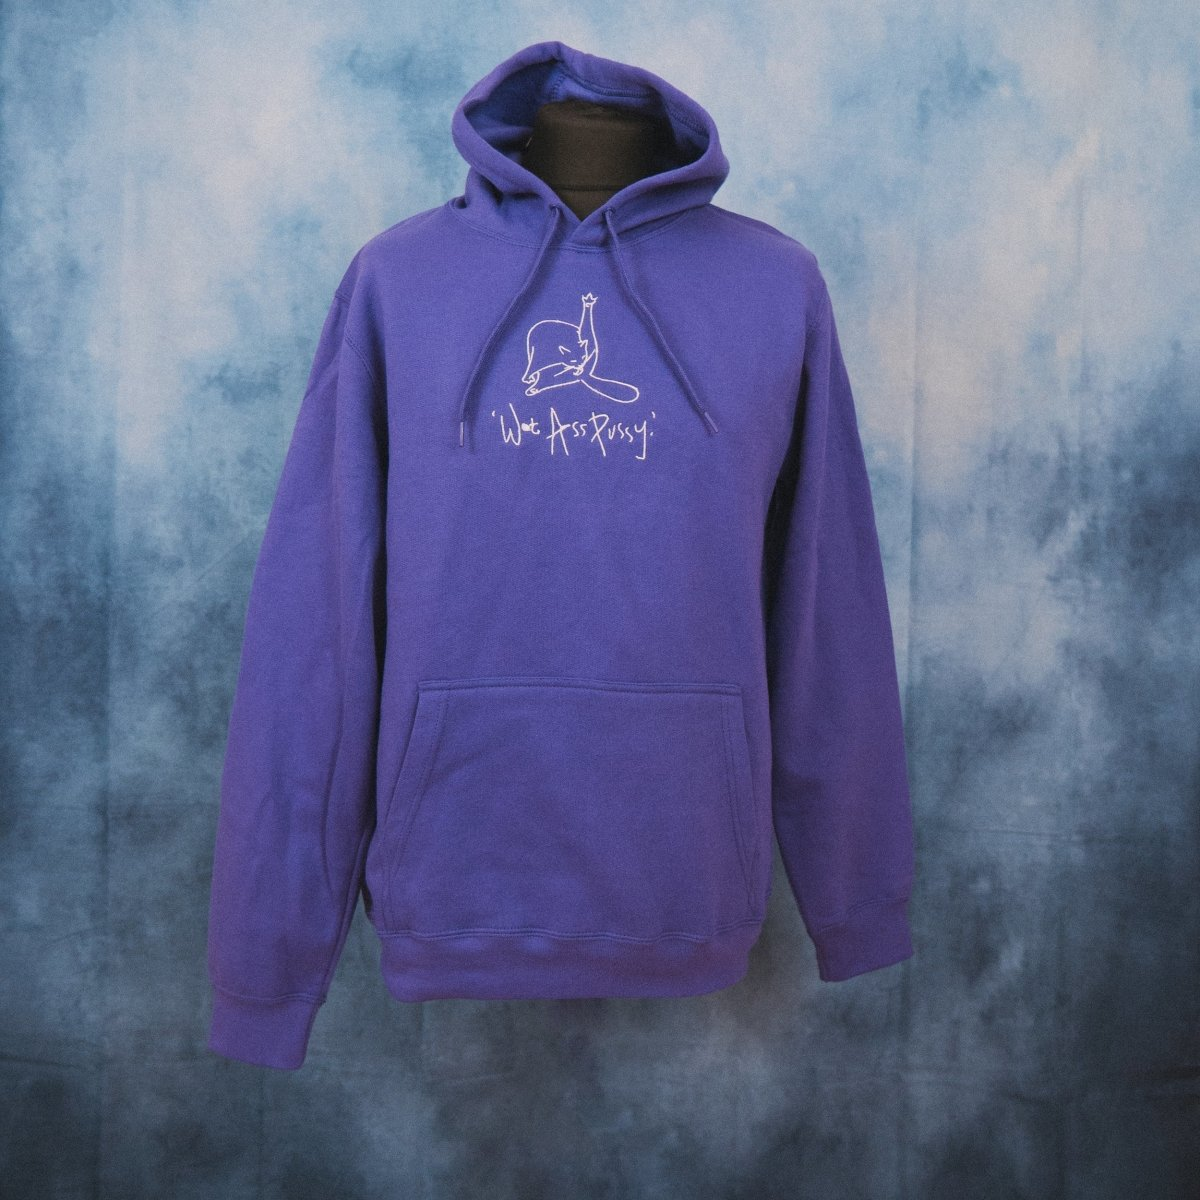 'Wet Ass Pussy' Unisex Embroidered Hoodie